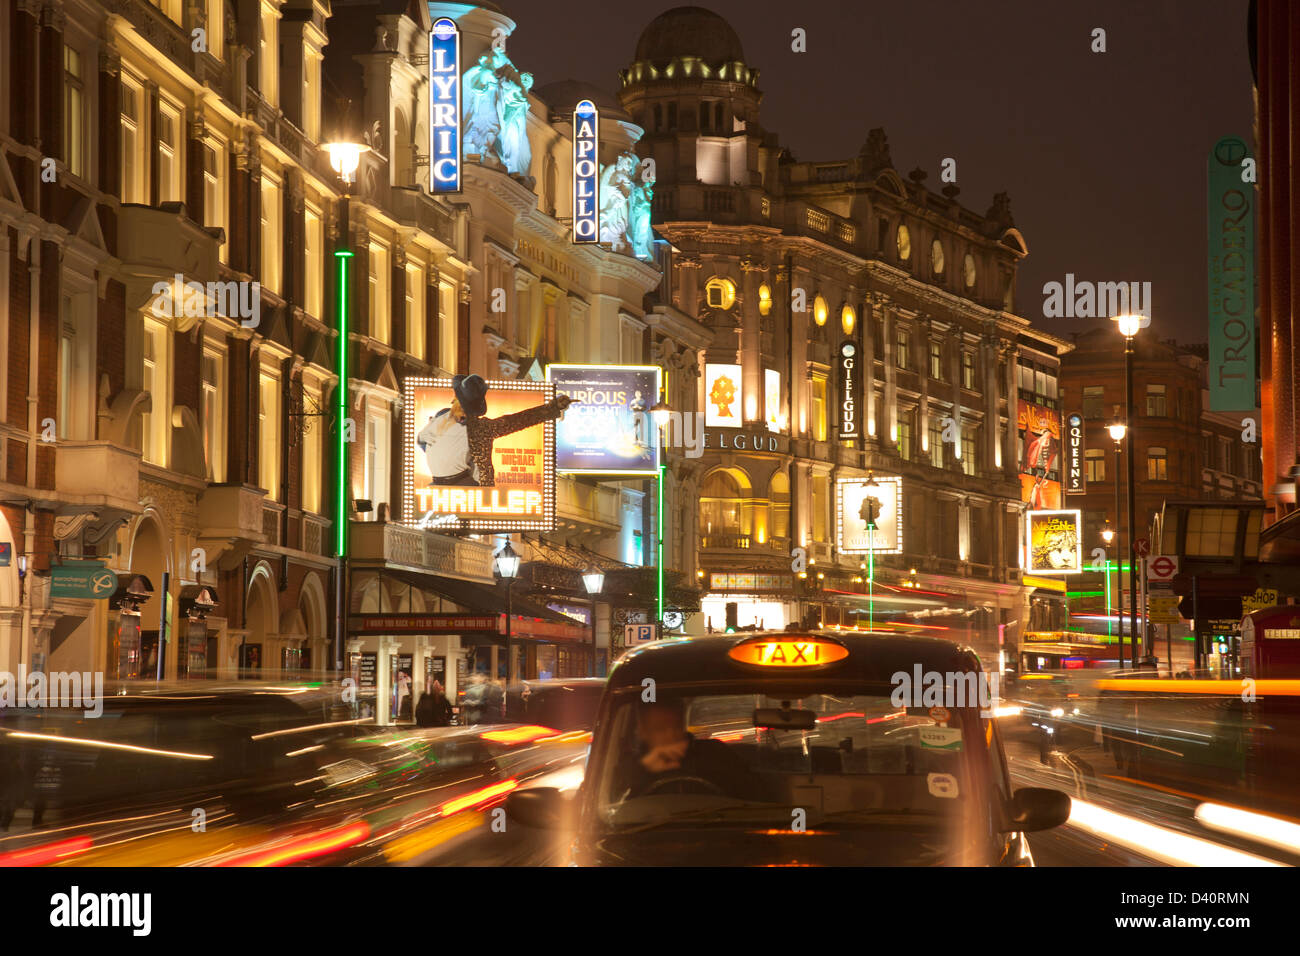 Heart of London theatreland, Shaftesbury Avenue: Lyric, Apollo, Gielgud, Queens theatres with taxi in foreground - Stock Image